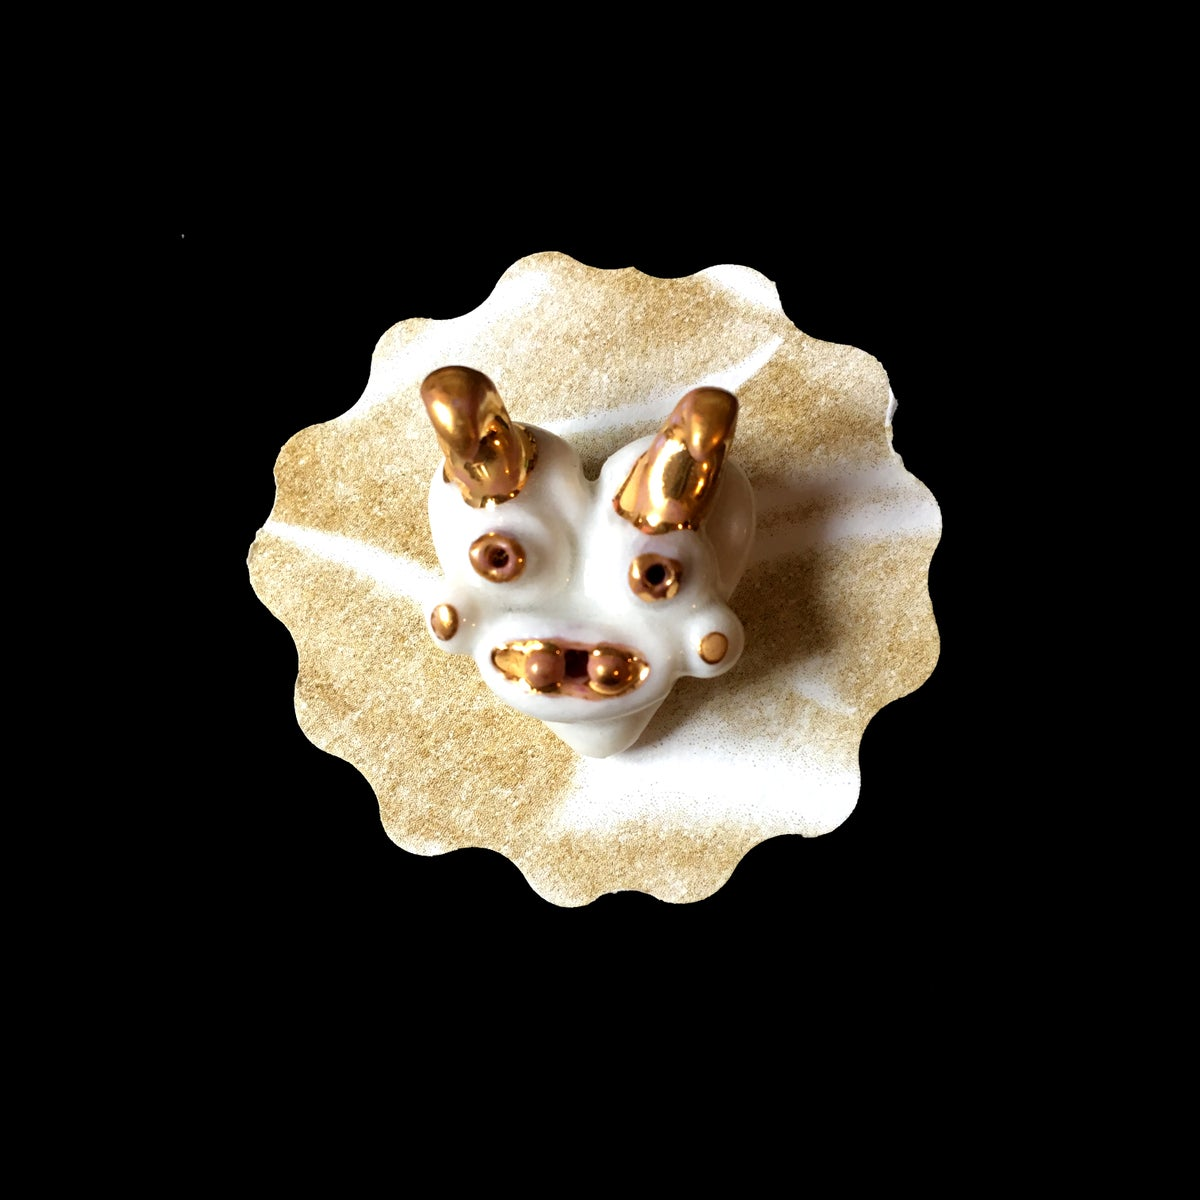 Image of Small Porcelain brooches